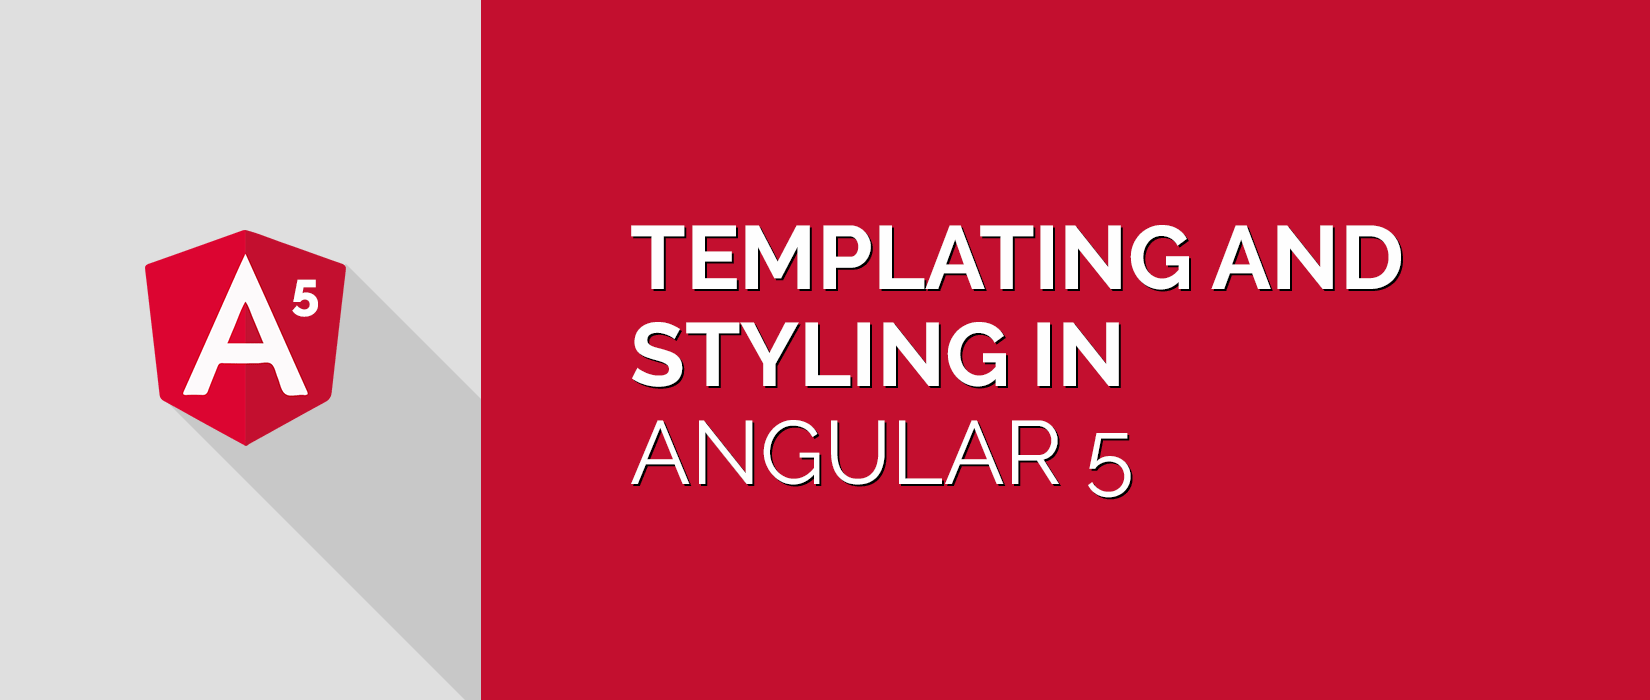 Angular 5 Template & Styling Tutorial